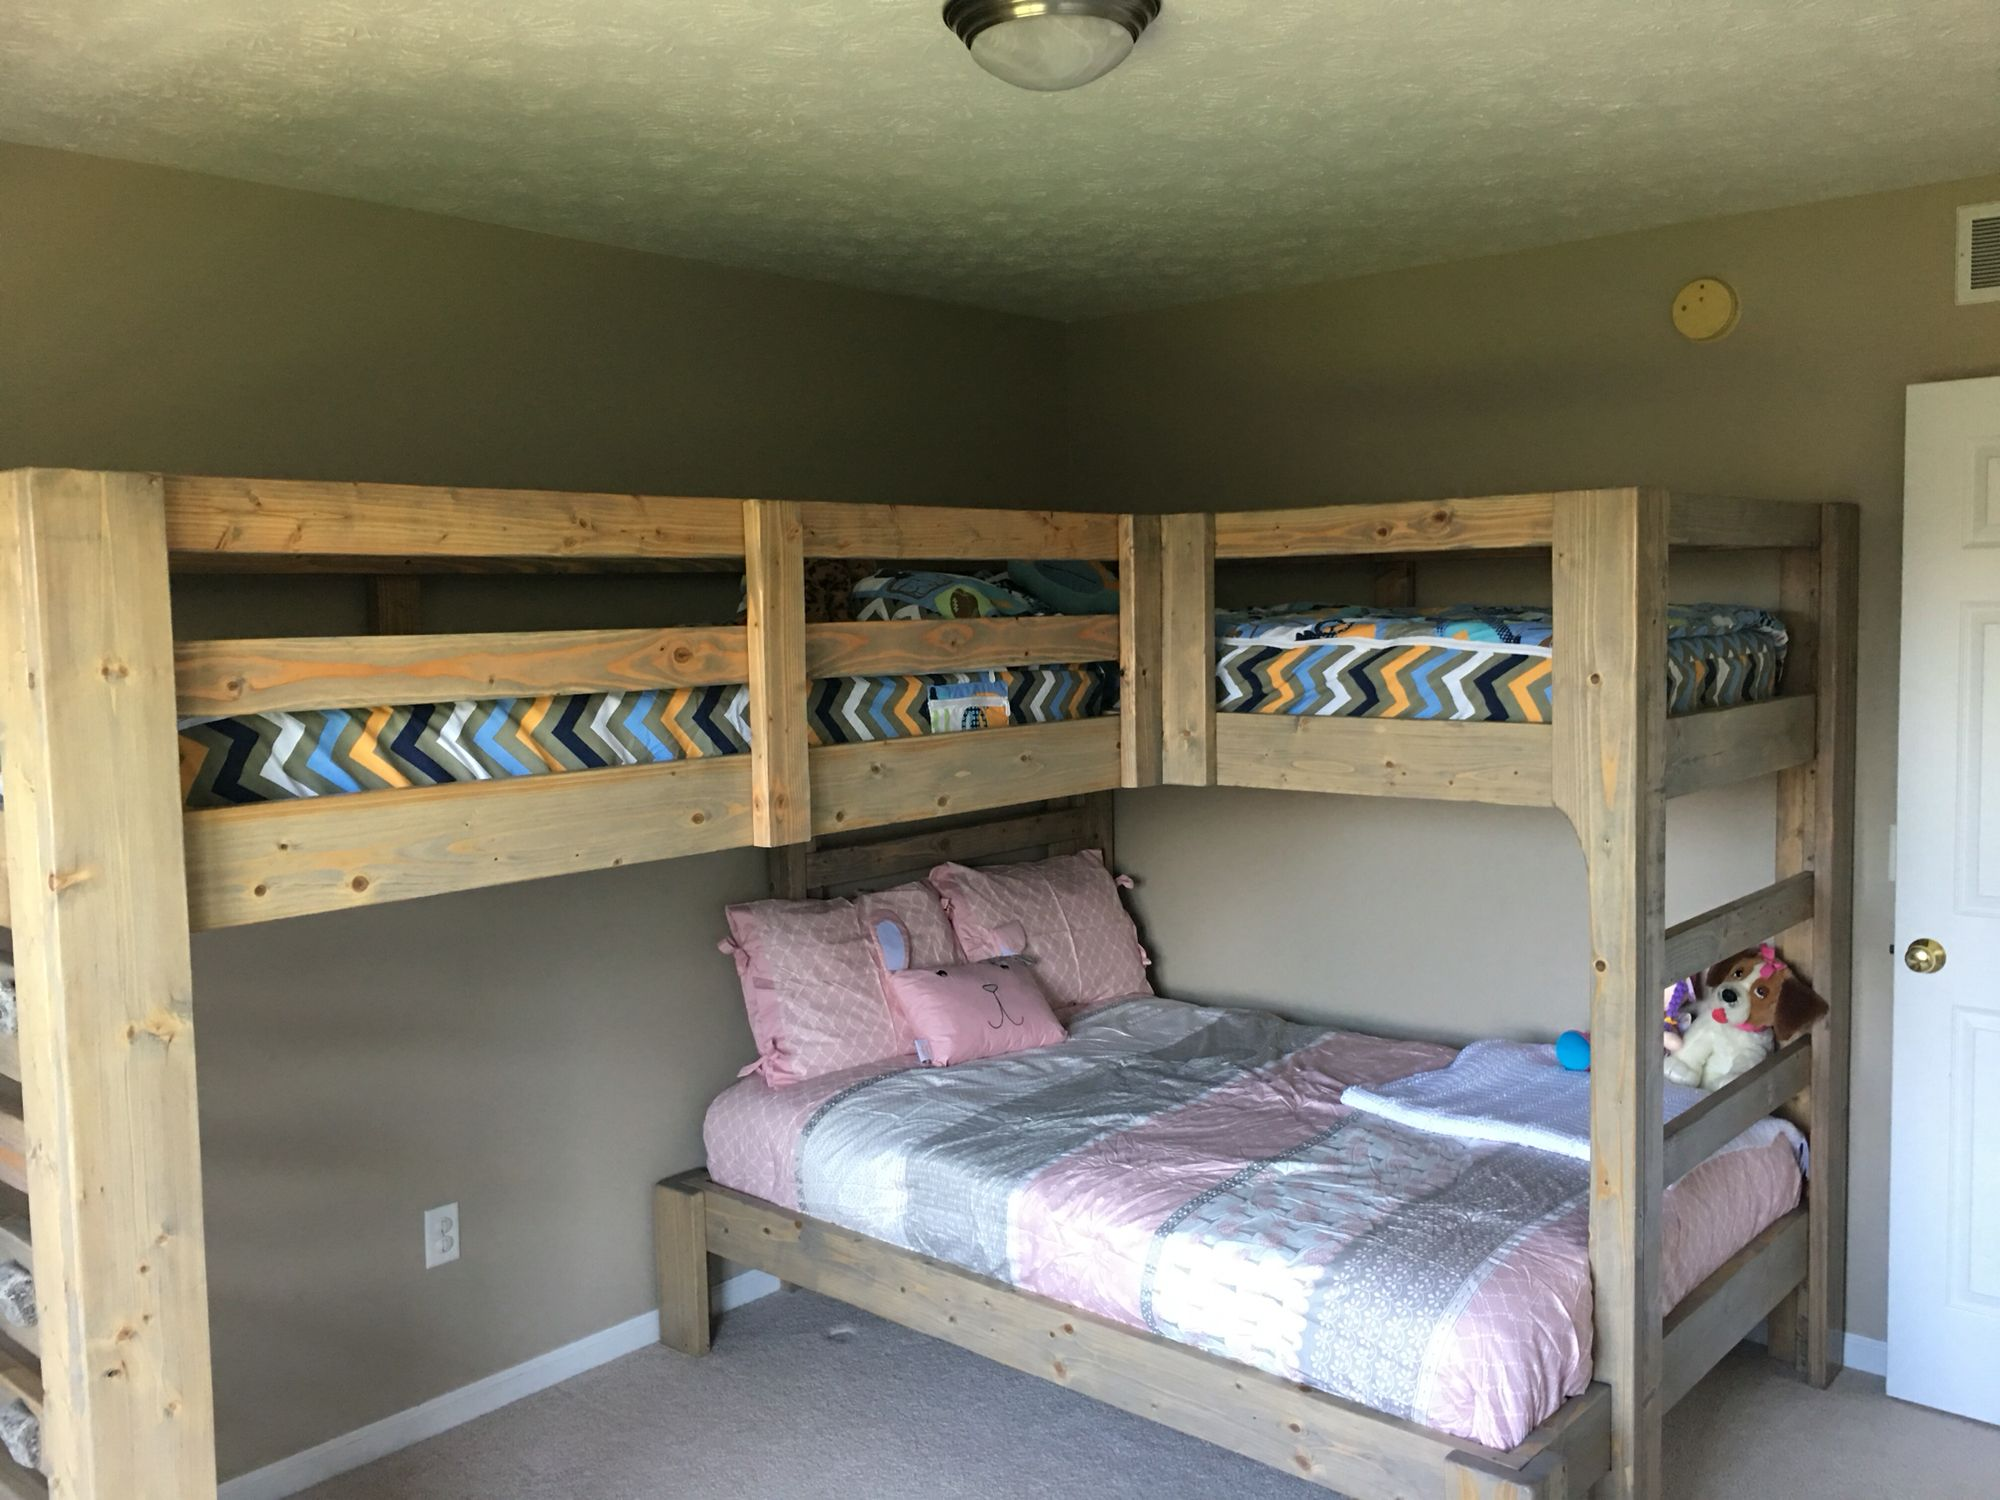 L Formed Loft Bunk Beds Triple bunk and loft beds with double or full size on bottom bunk. Plans  from @jaybates